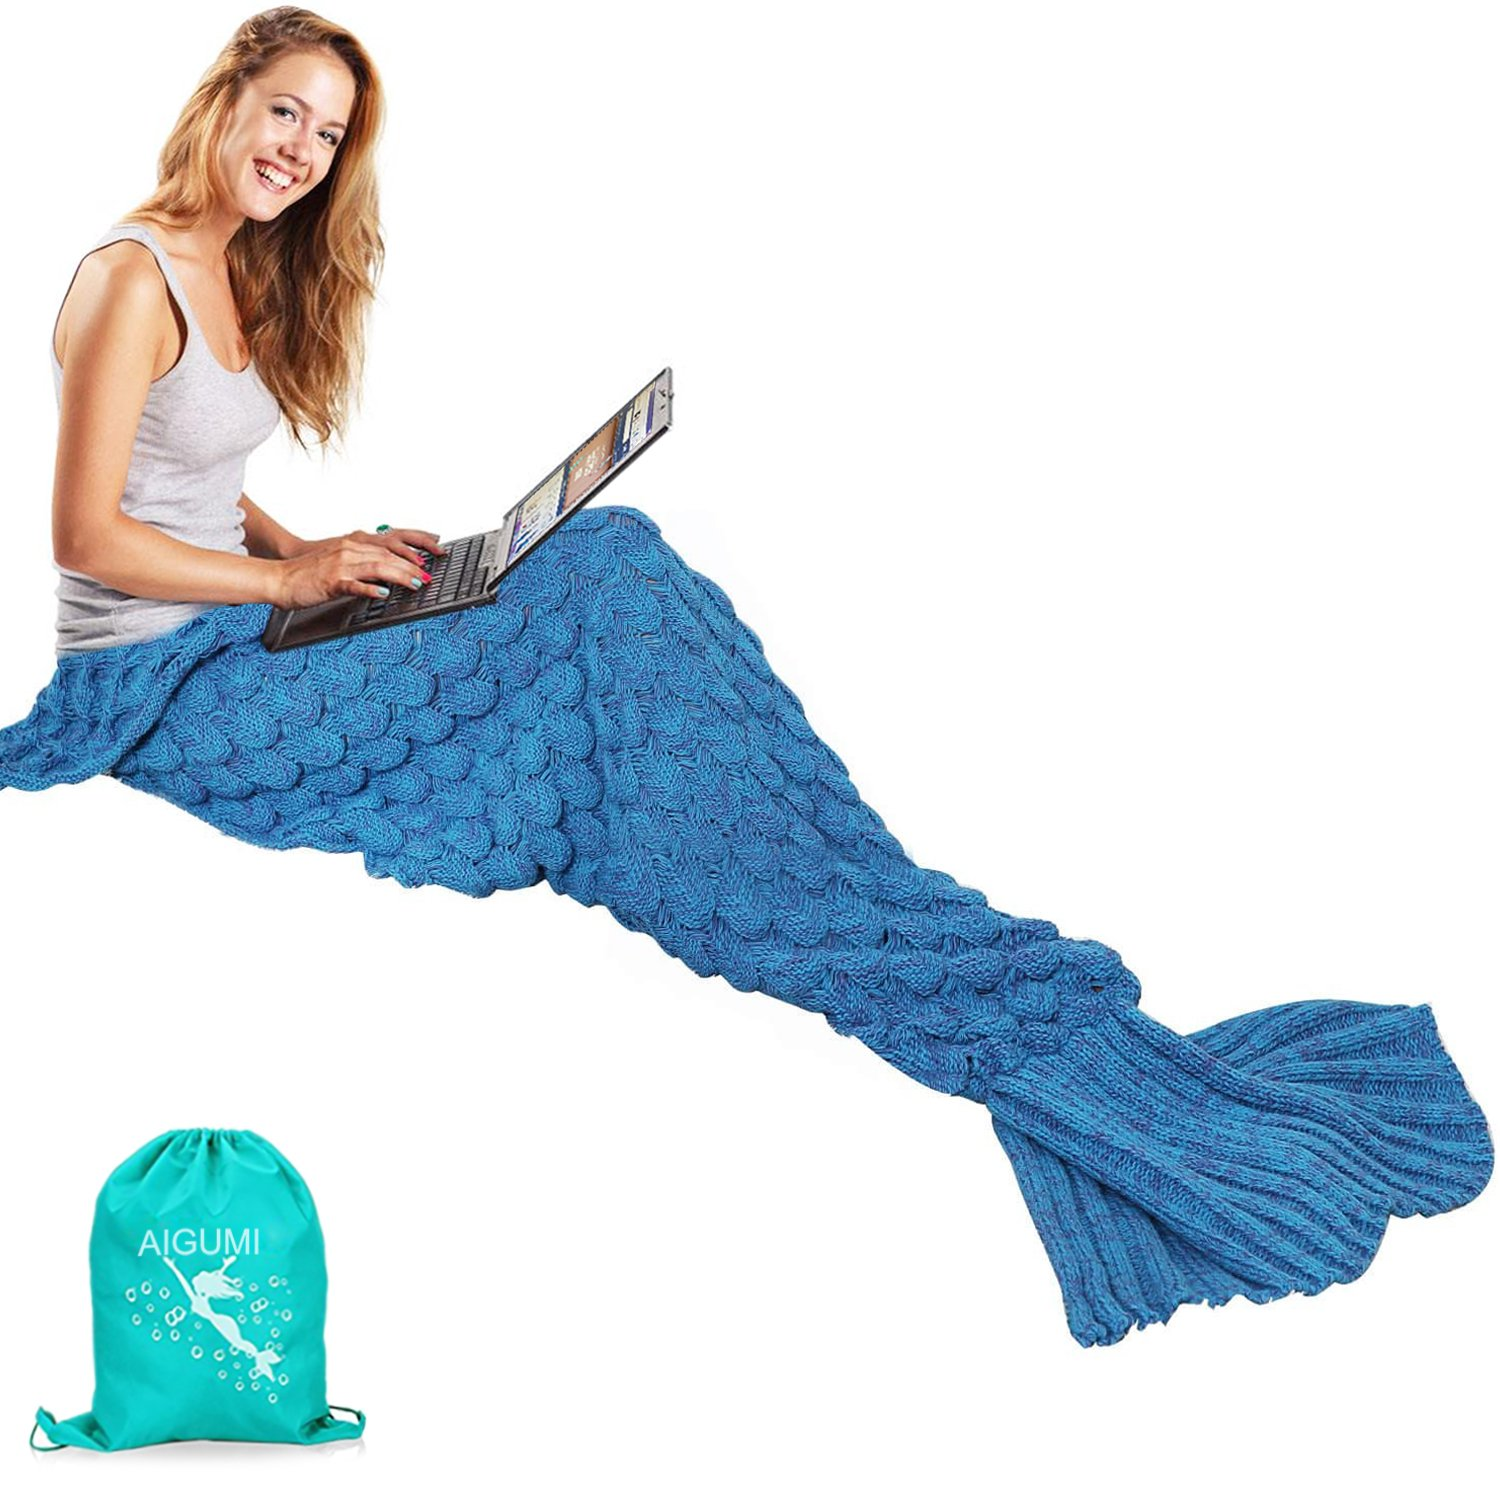 Mermaid Tail Blanket, AIGUMI Handmade Knitted Blankie Tails, Warm Sofa Quilt Living room blanket,All Seasons Cozy Sleeping Bags for Adults and Kids 190cmX90cm(74.8 inch x35.4 inch ) (Purple)